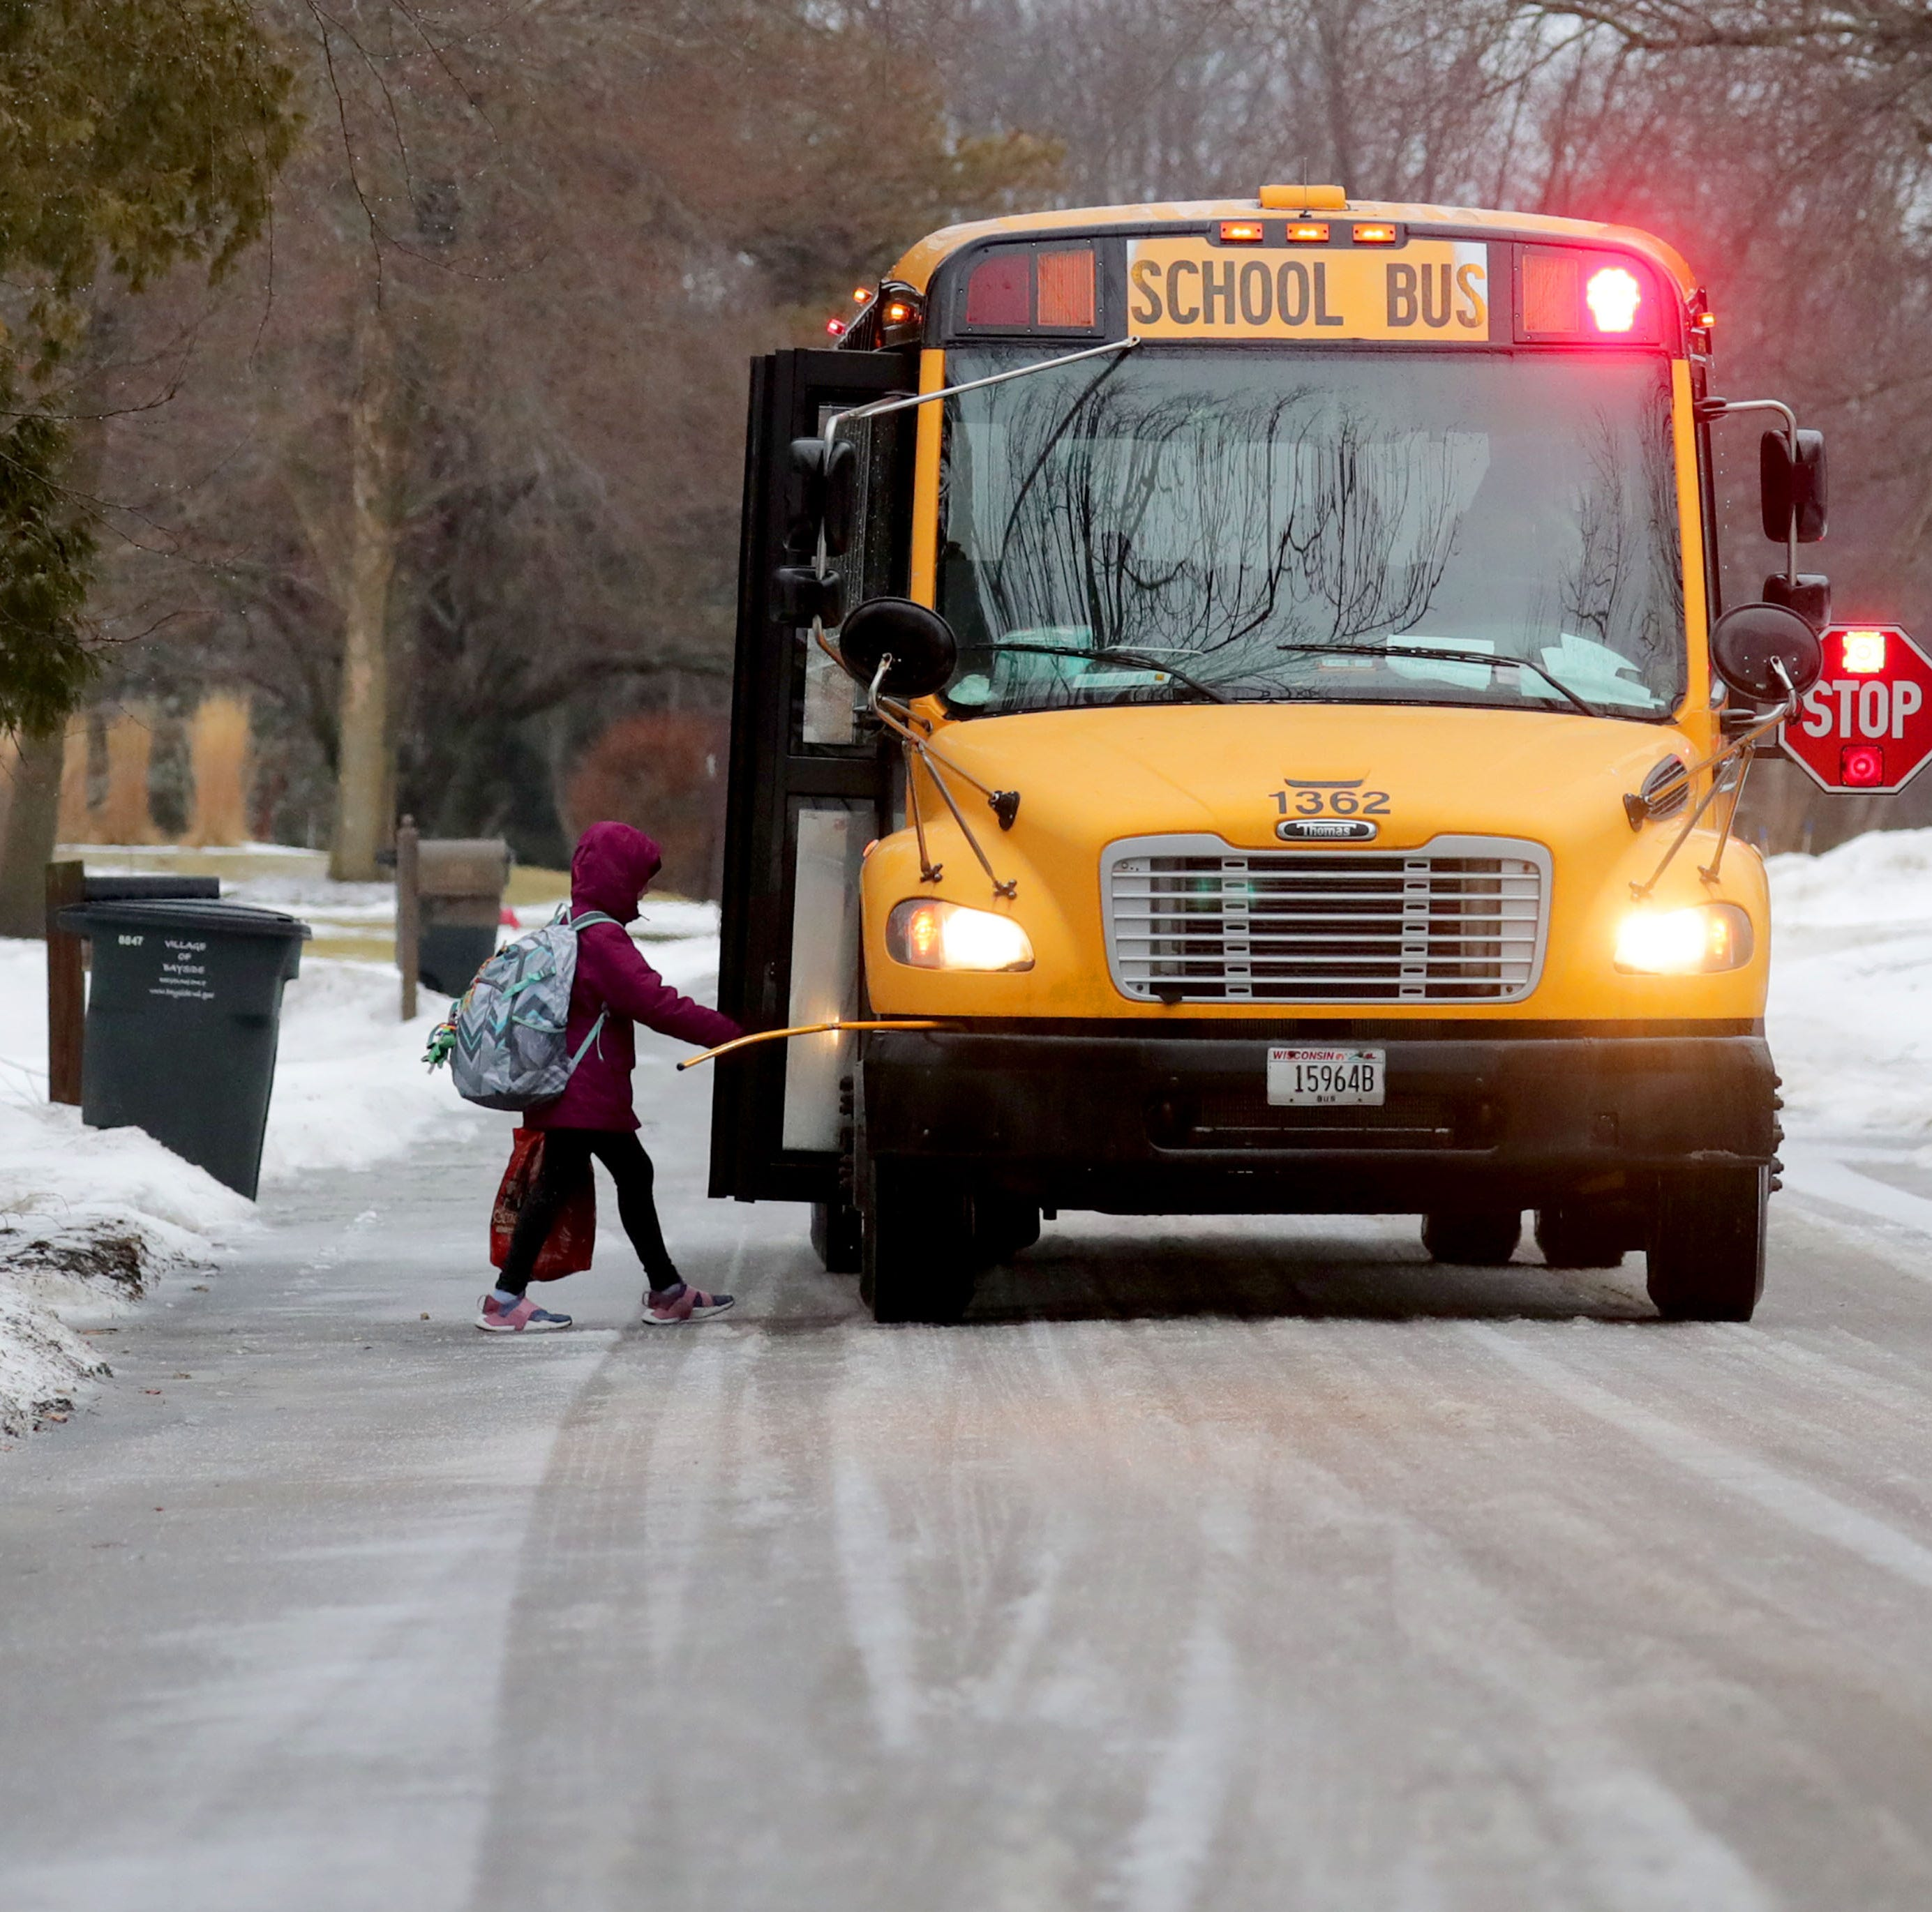 At least half a dozen Milwaukee area school districts affected by abrupt closure of crossing guard contractor